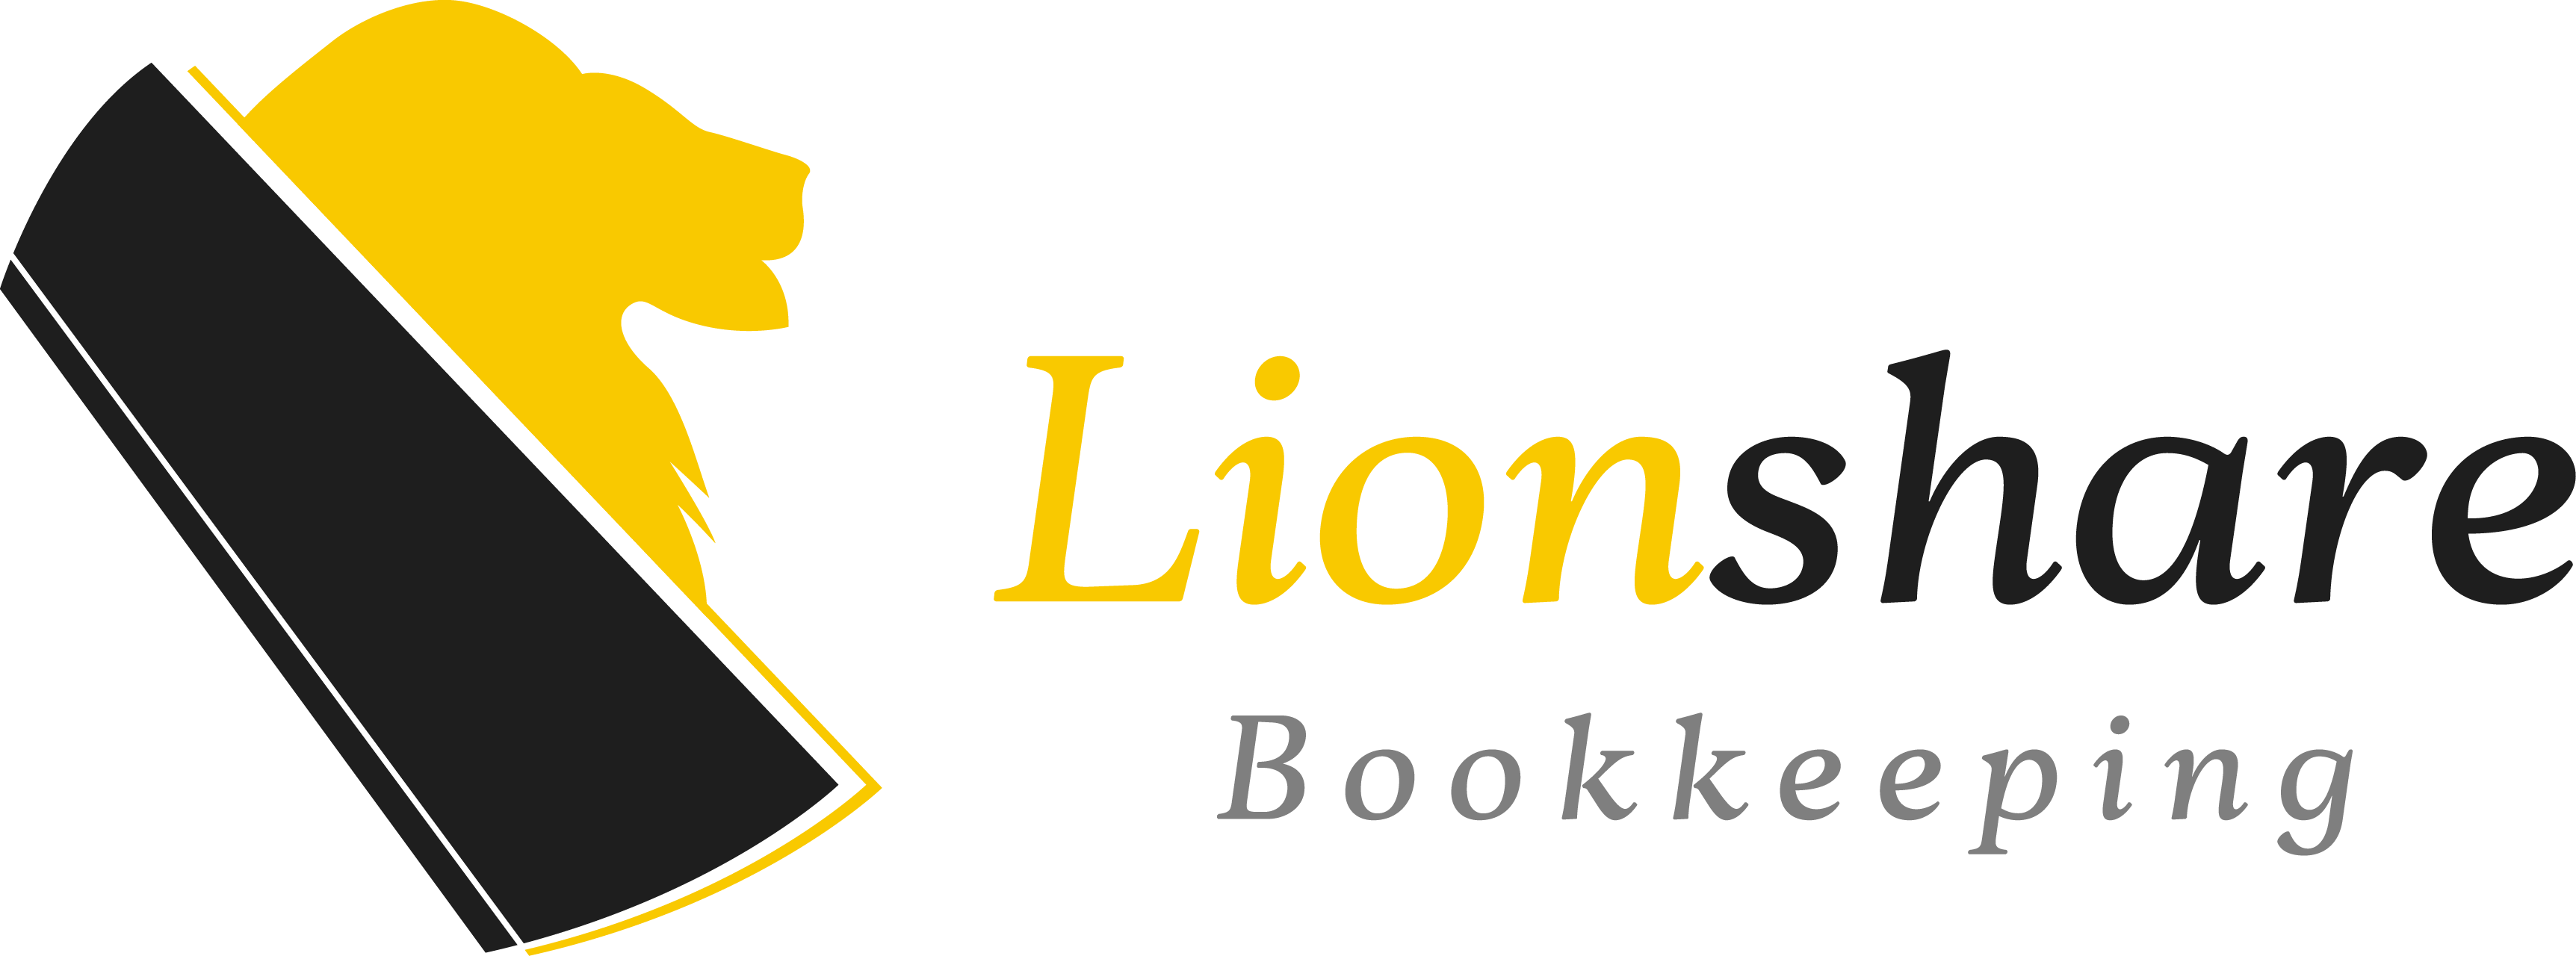 Lionshare Bookkeeping